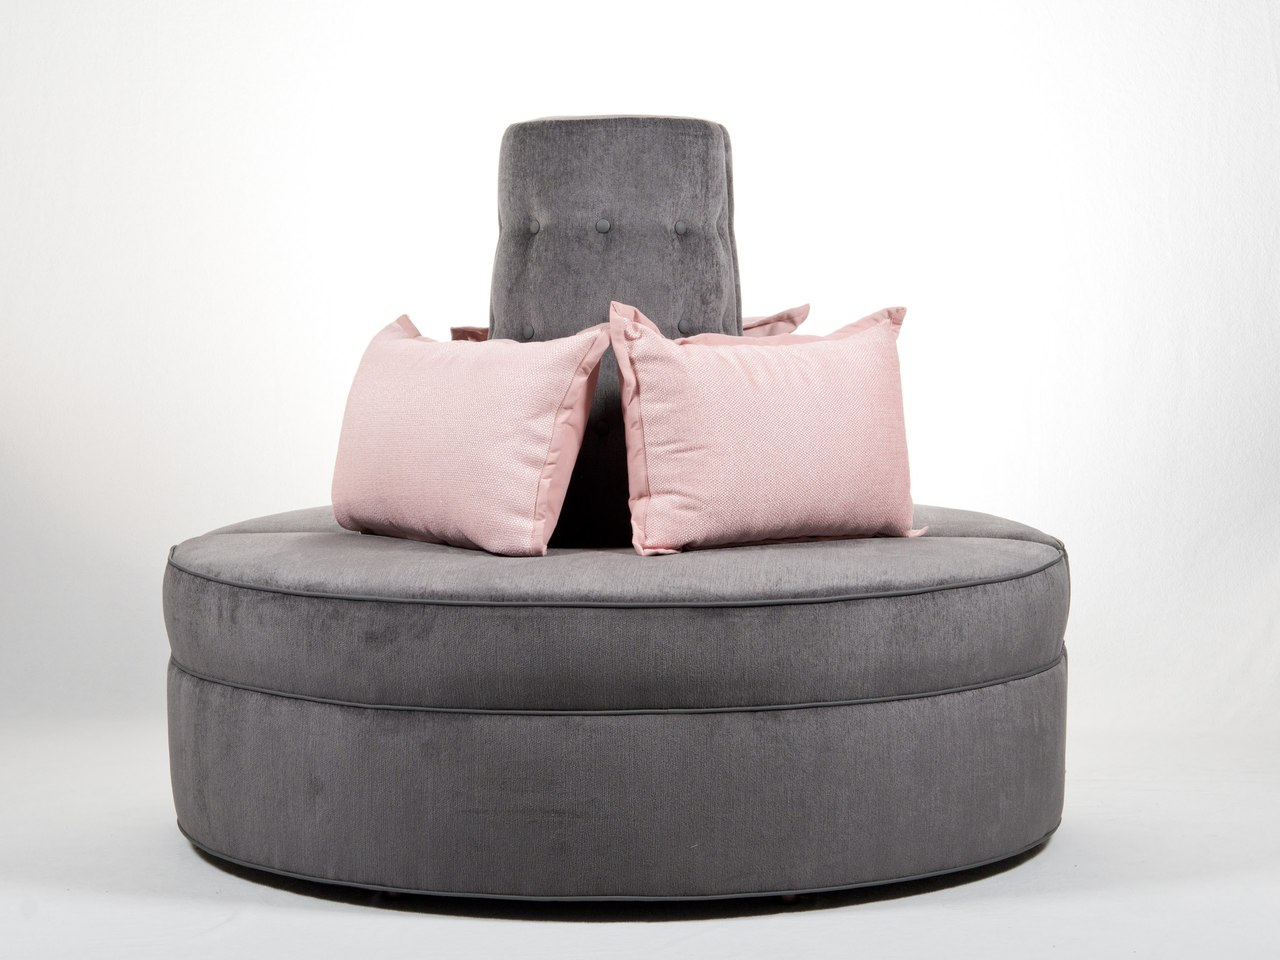 Fantastic Round Banquette Settee Lobby Sofa In Gray Chenille Fabric Ncnpc Chair Design For Home Ncnpcorg